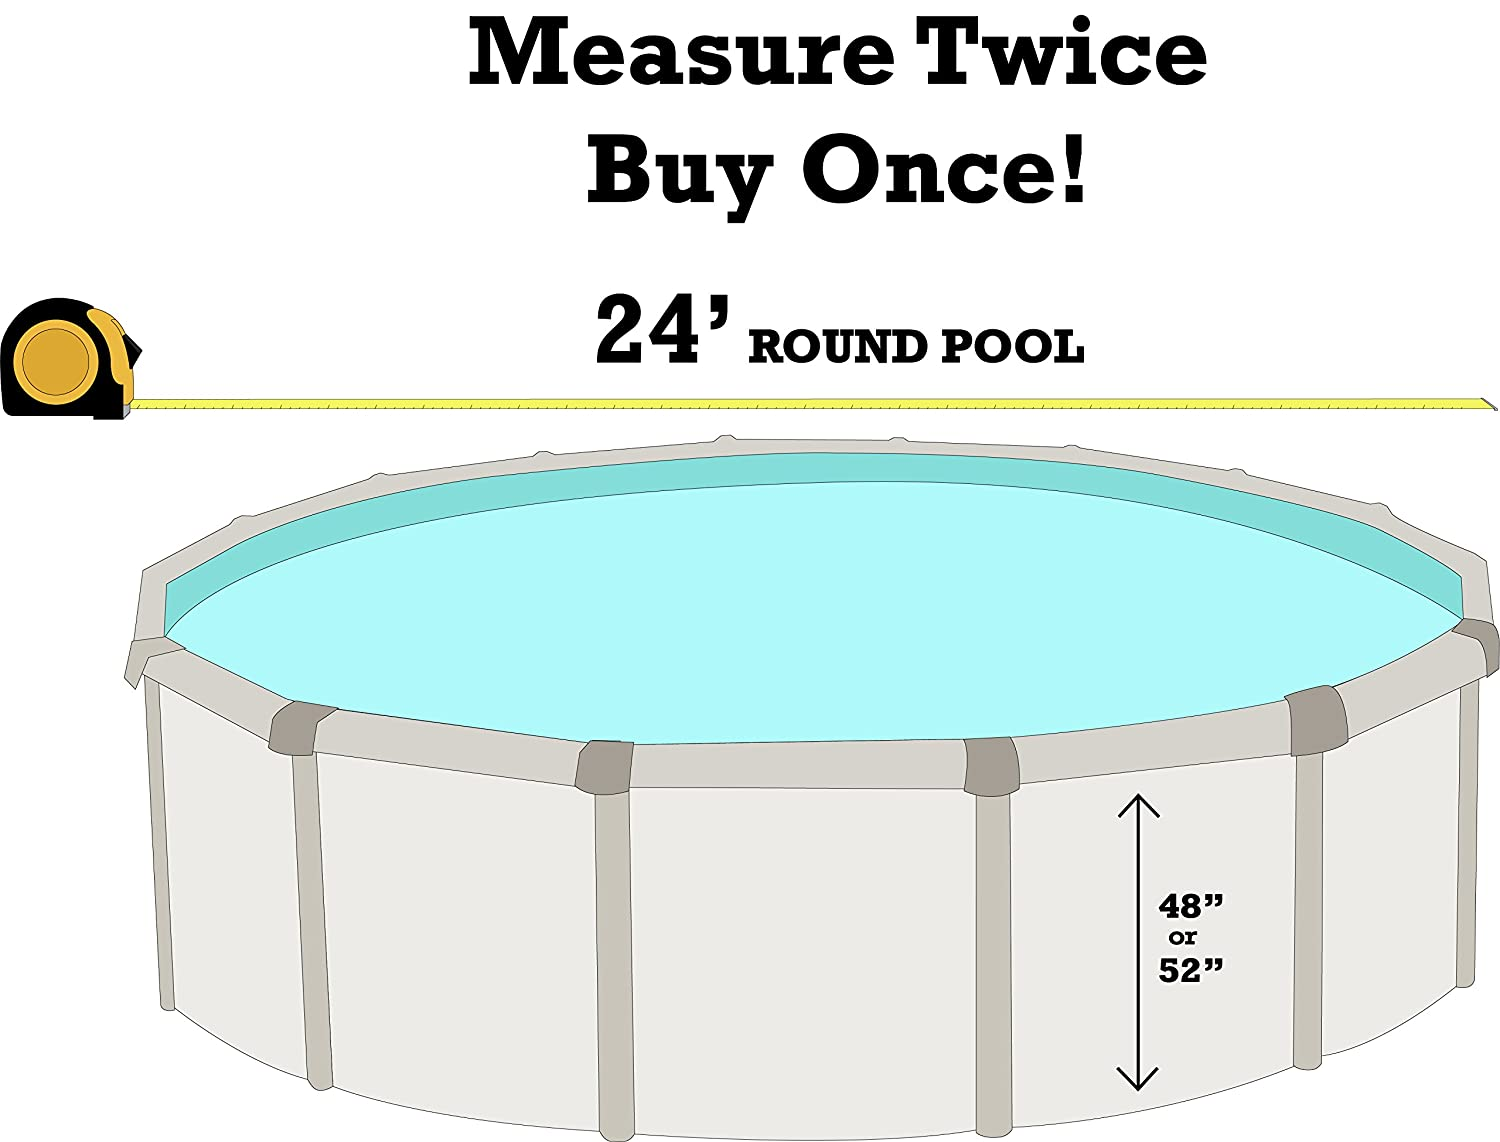 48-to-52-Inch Wall Height 20 Gauge Virgin Vinyl Designed for Steel Sided Above-Ground Swimming Pools Overlap Style Smartline Antilles Dolphin 24-Foot Round Liner